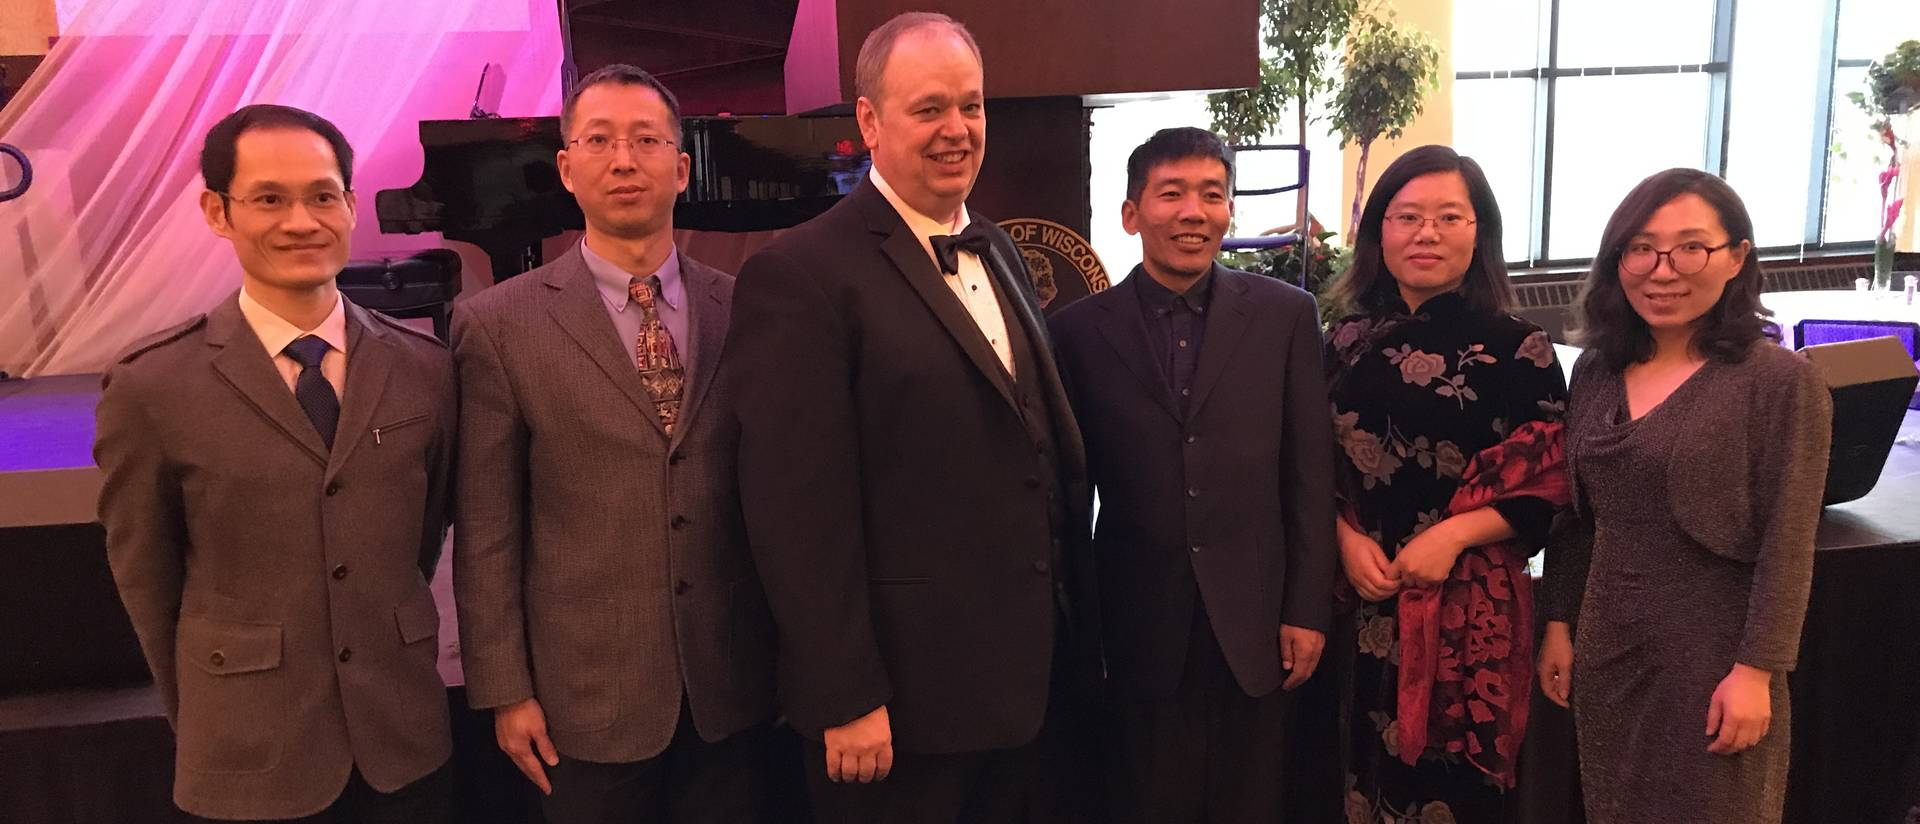 Visiting International Scholars with the Chancellor at the 2018 Viennese Ball